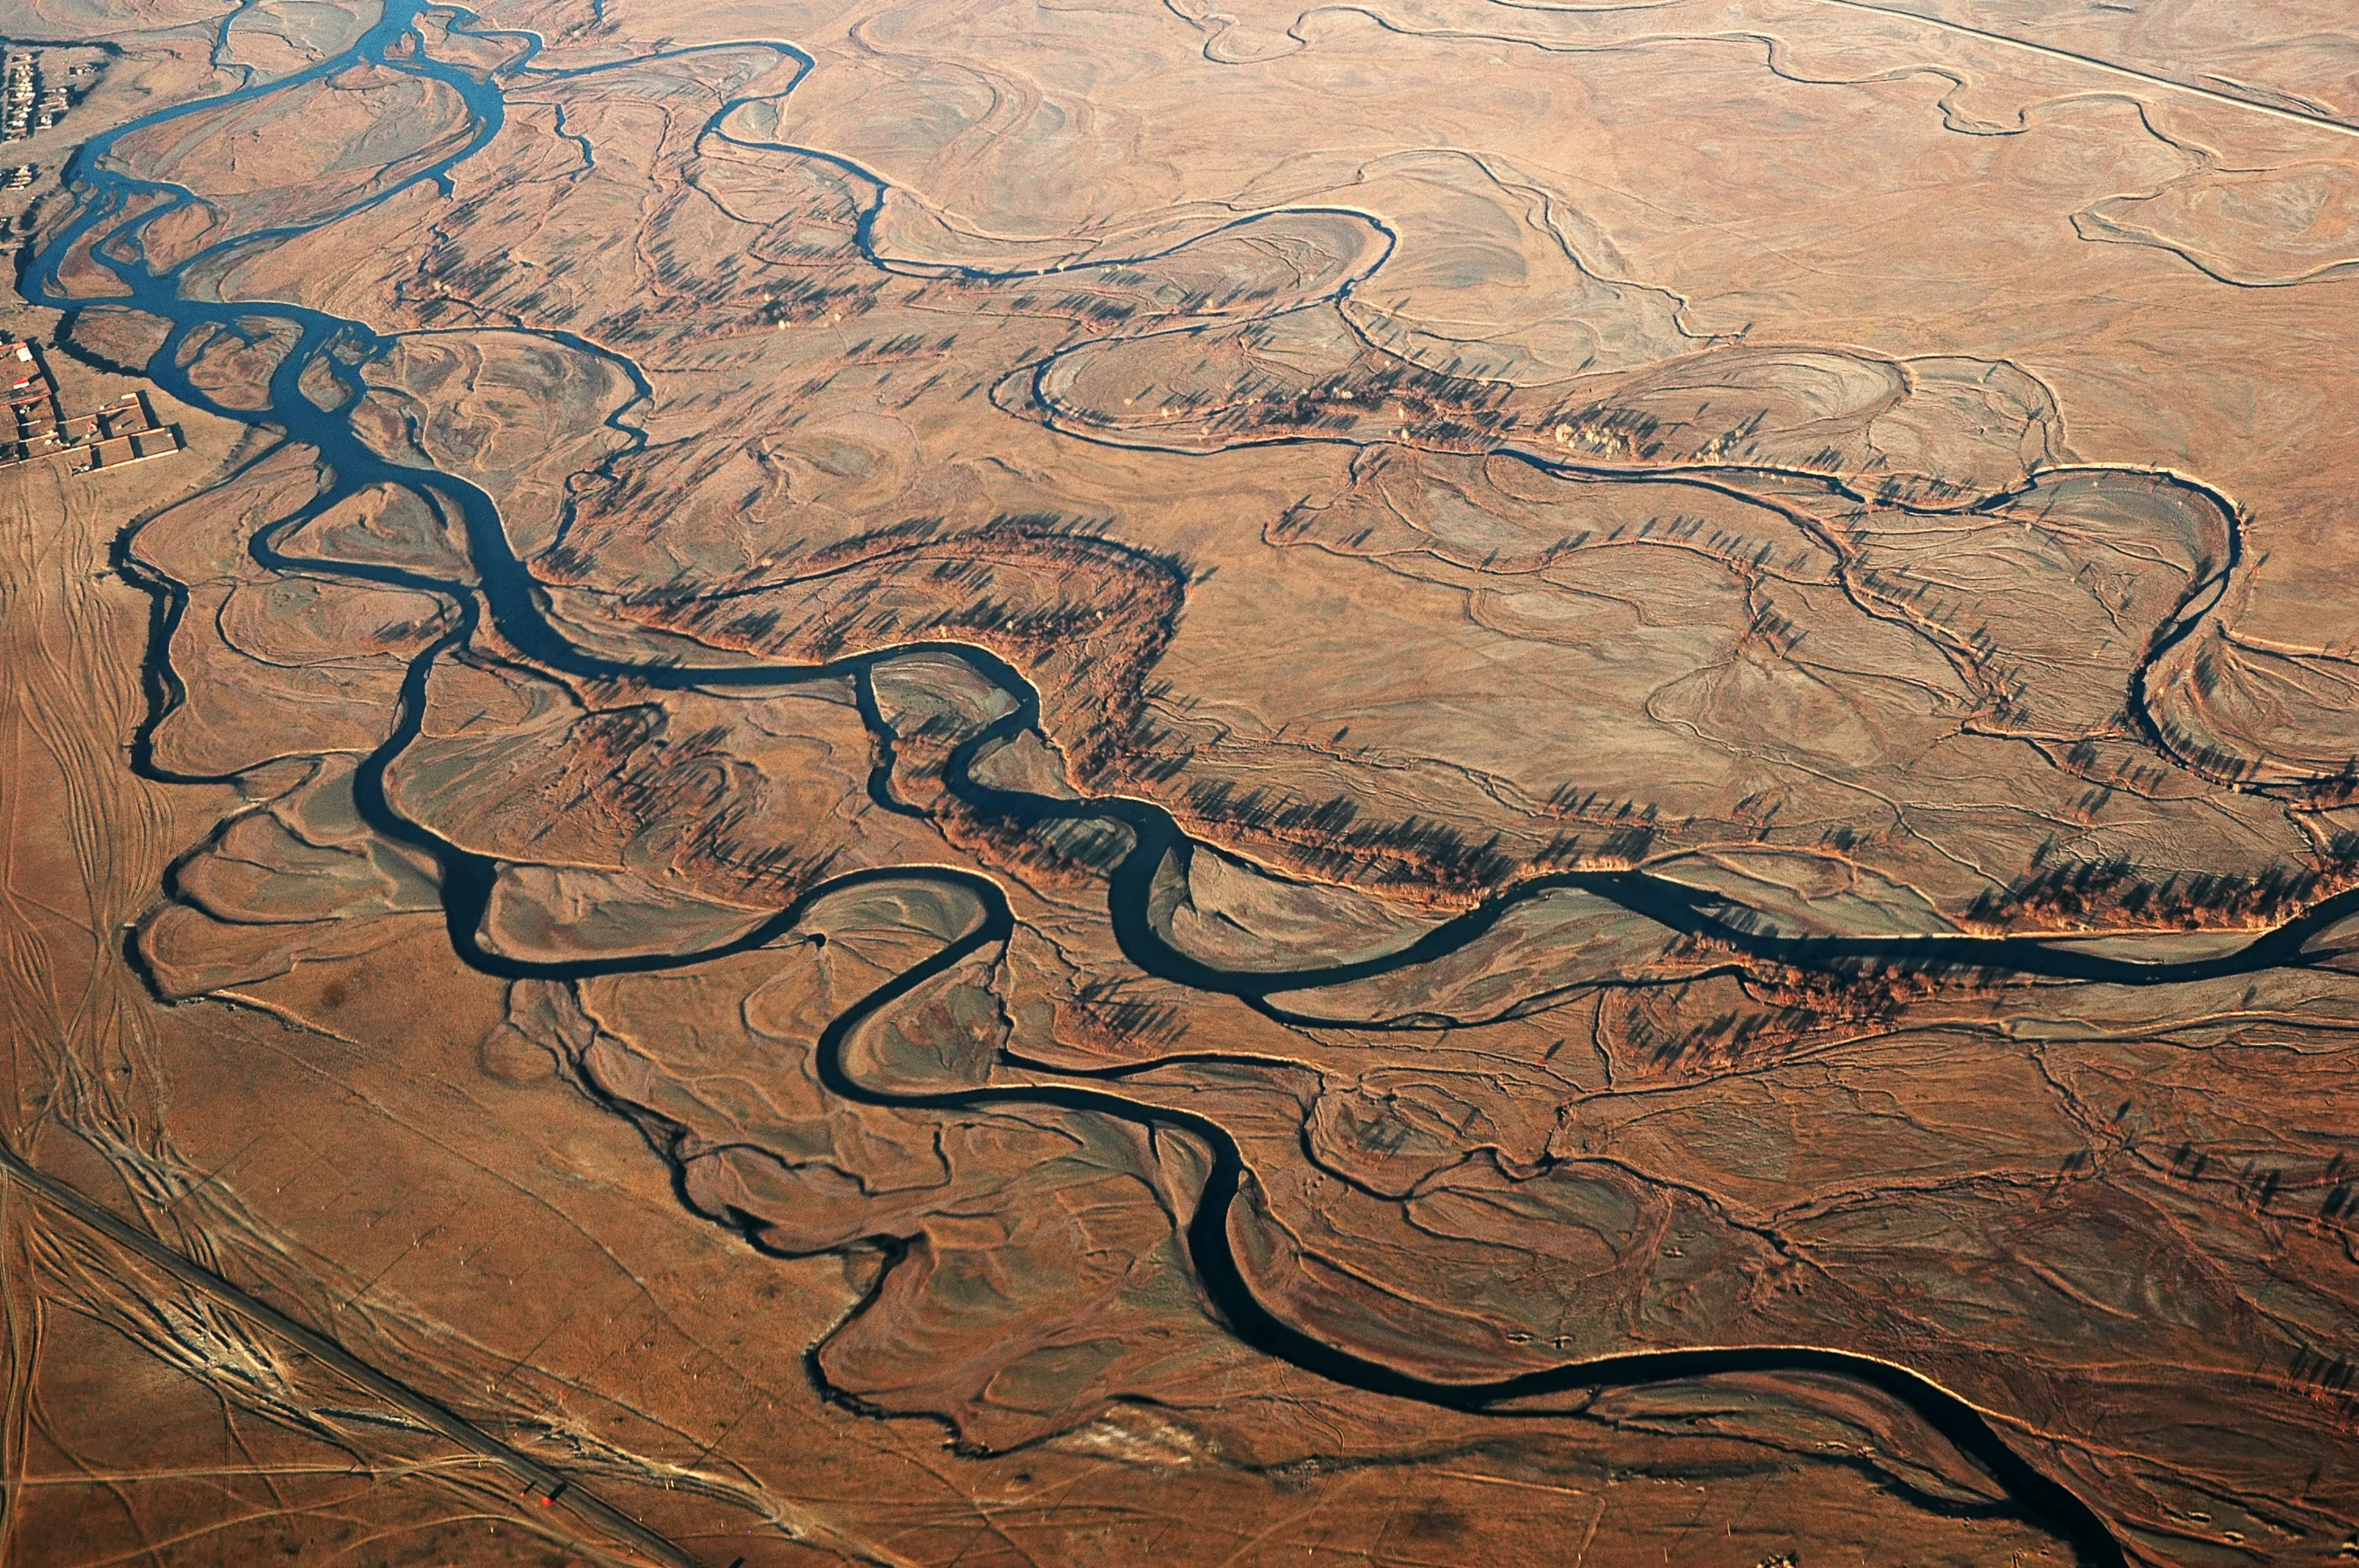 View from the plane on Mongolian landscape